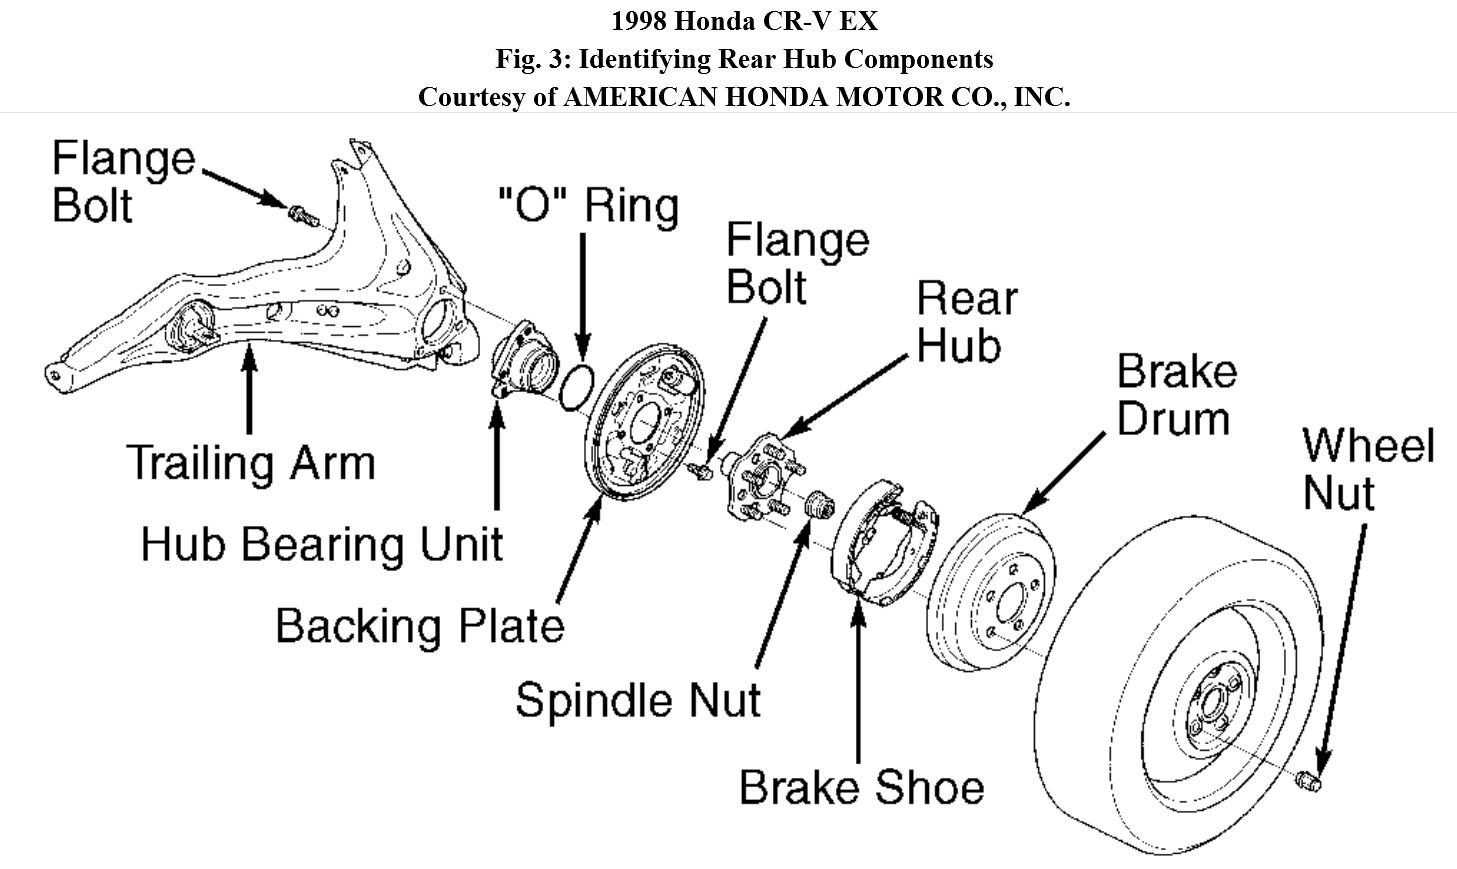 2007 Honda Accord Hub Diagram All Kind Of Wiring Diagrams 98 Crv Fuse Harness U2022 Mca 2000 Org Parts Fuses